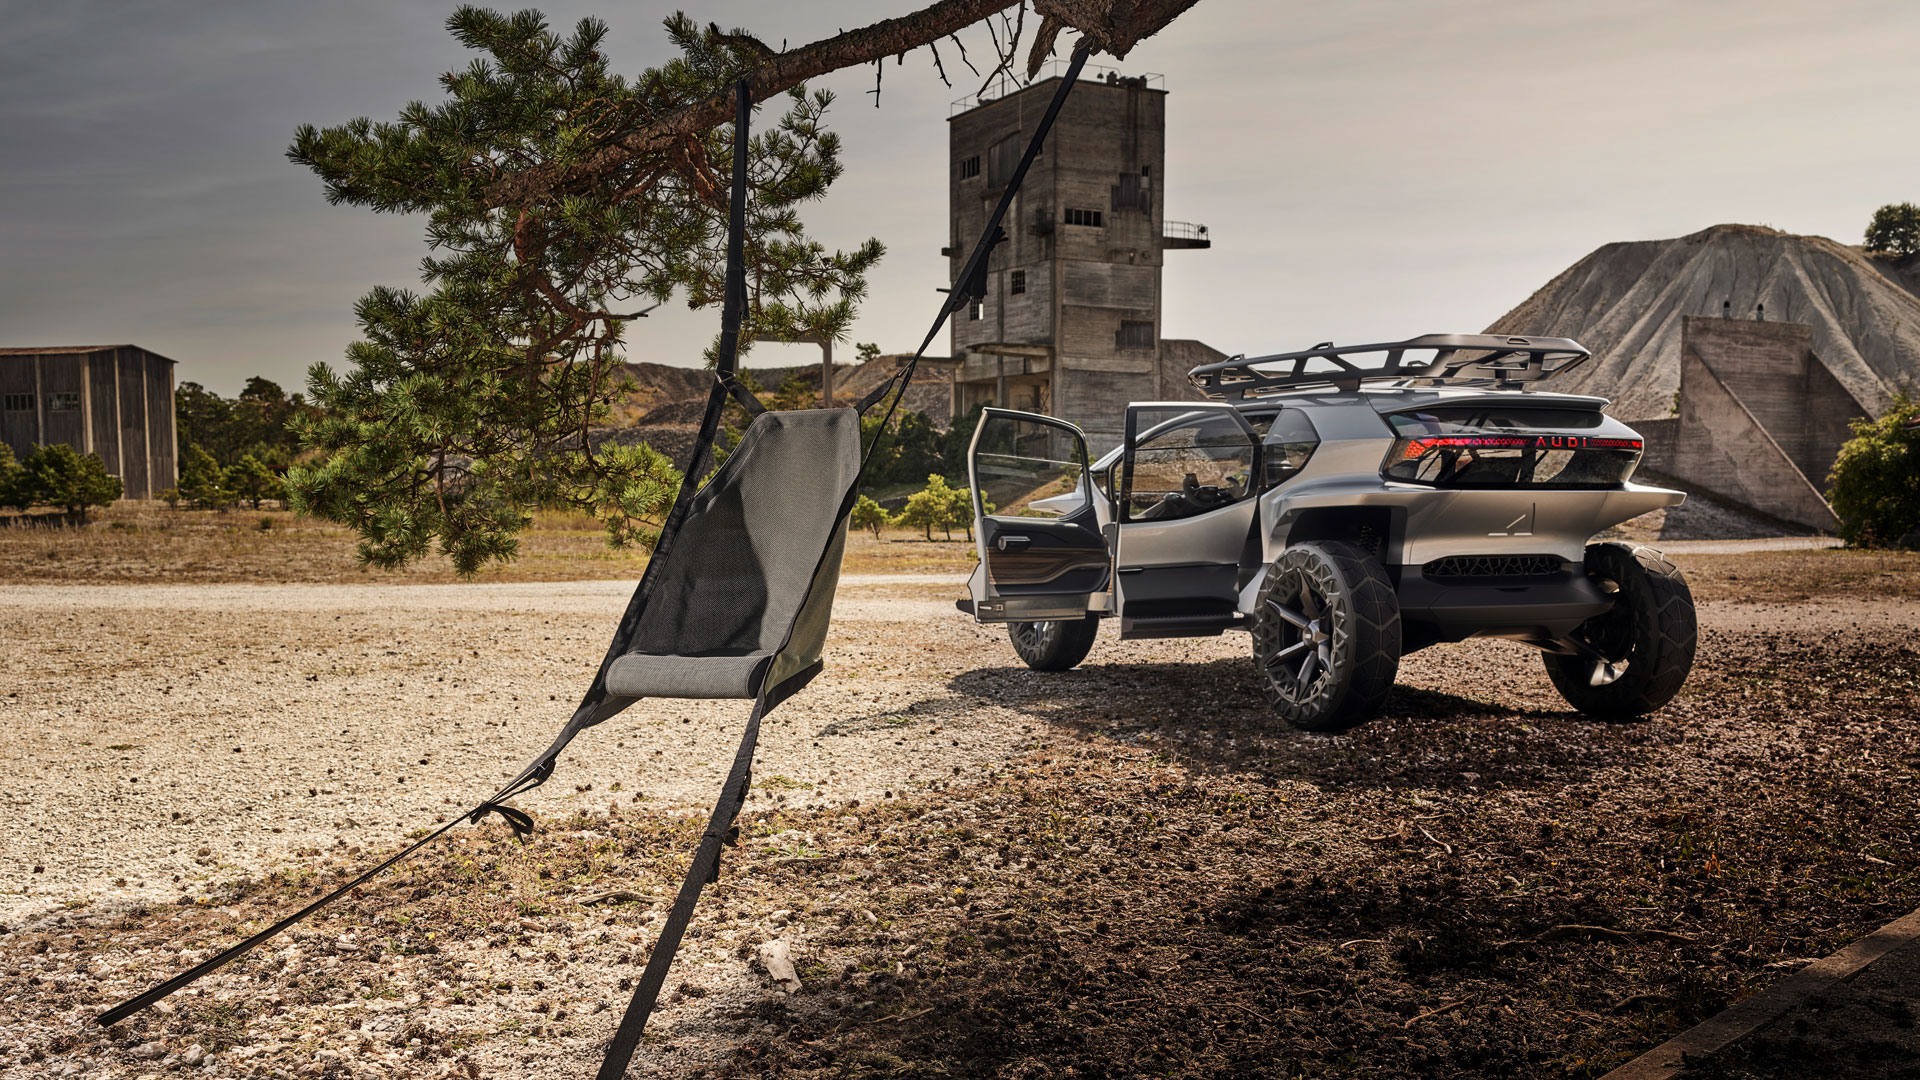 A hanging chair from the 2019 concept car Audi AI:TRAIL